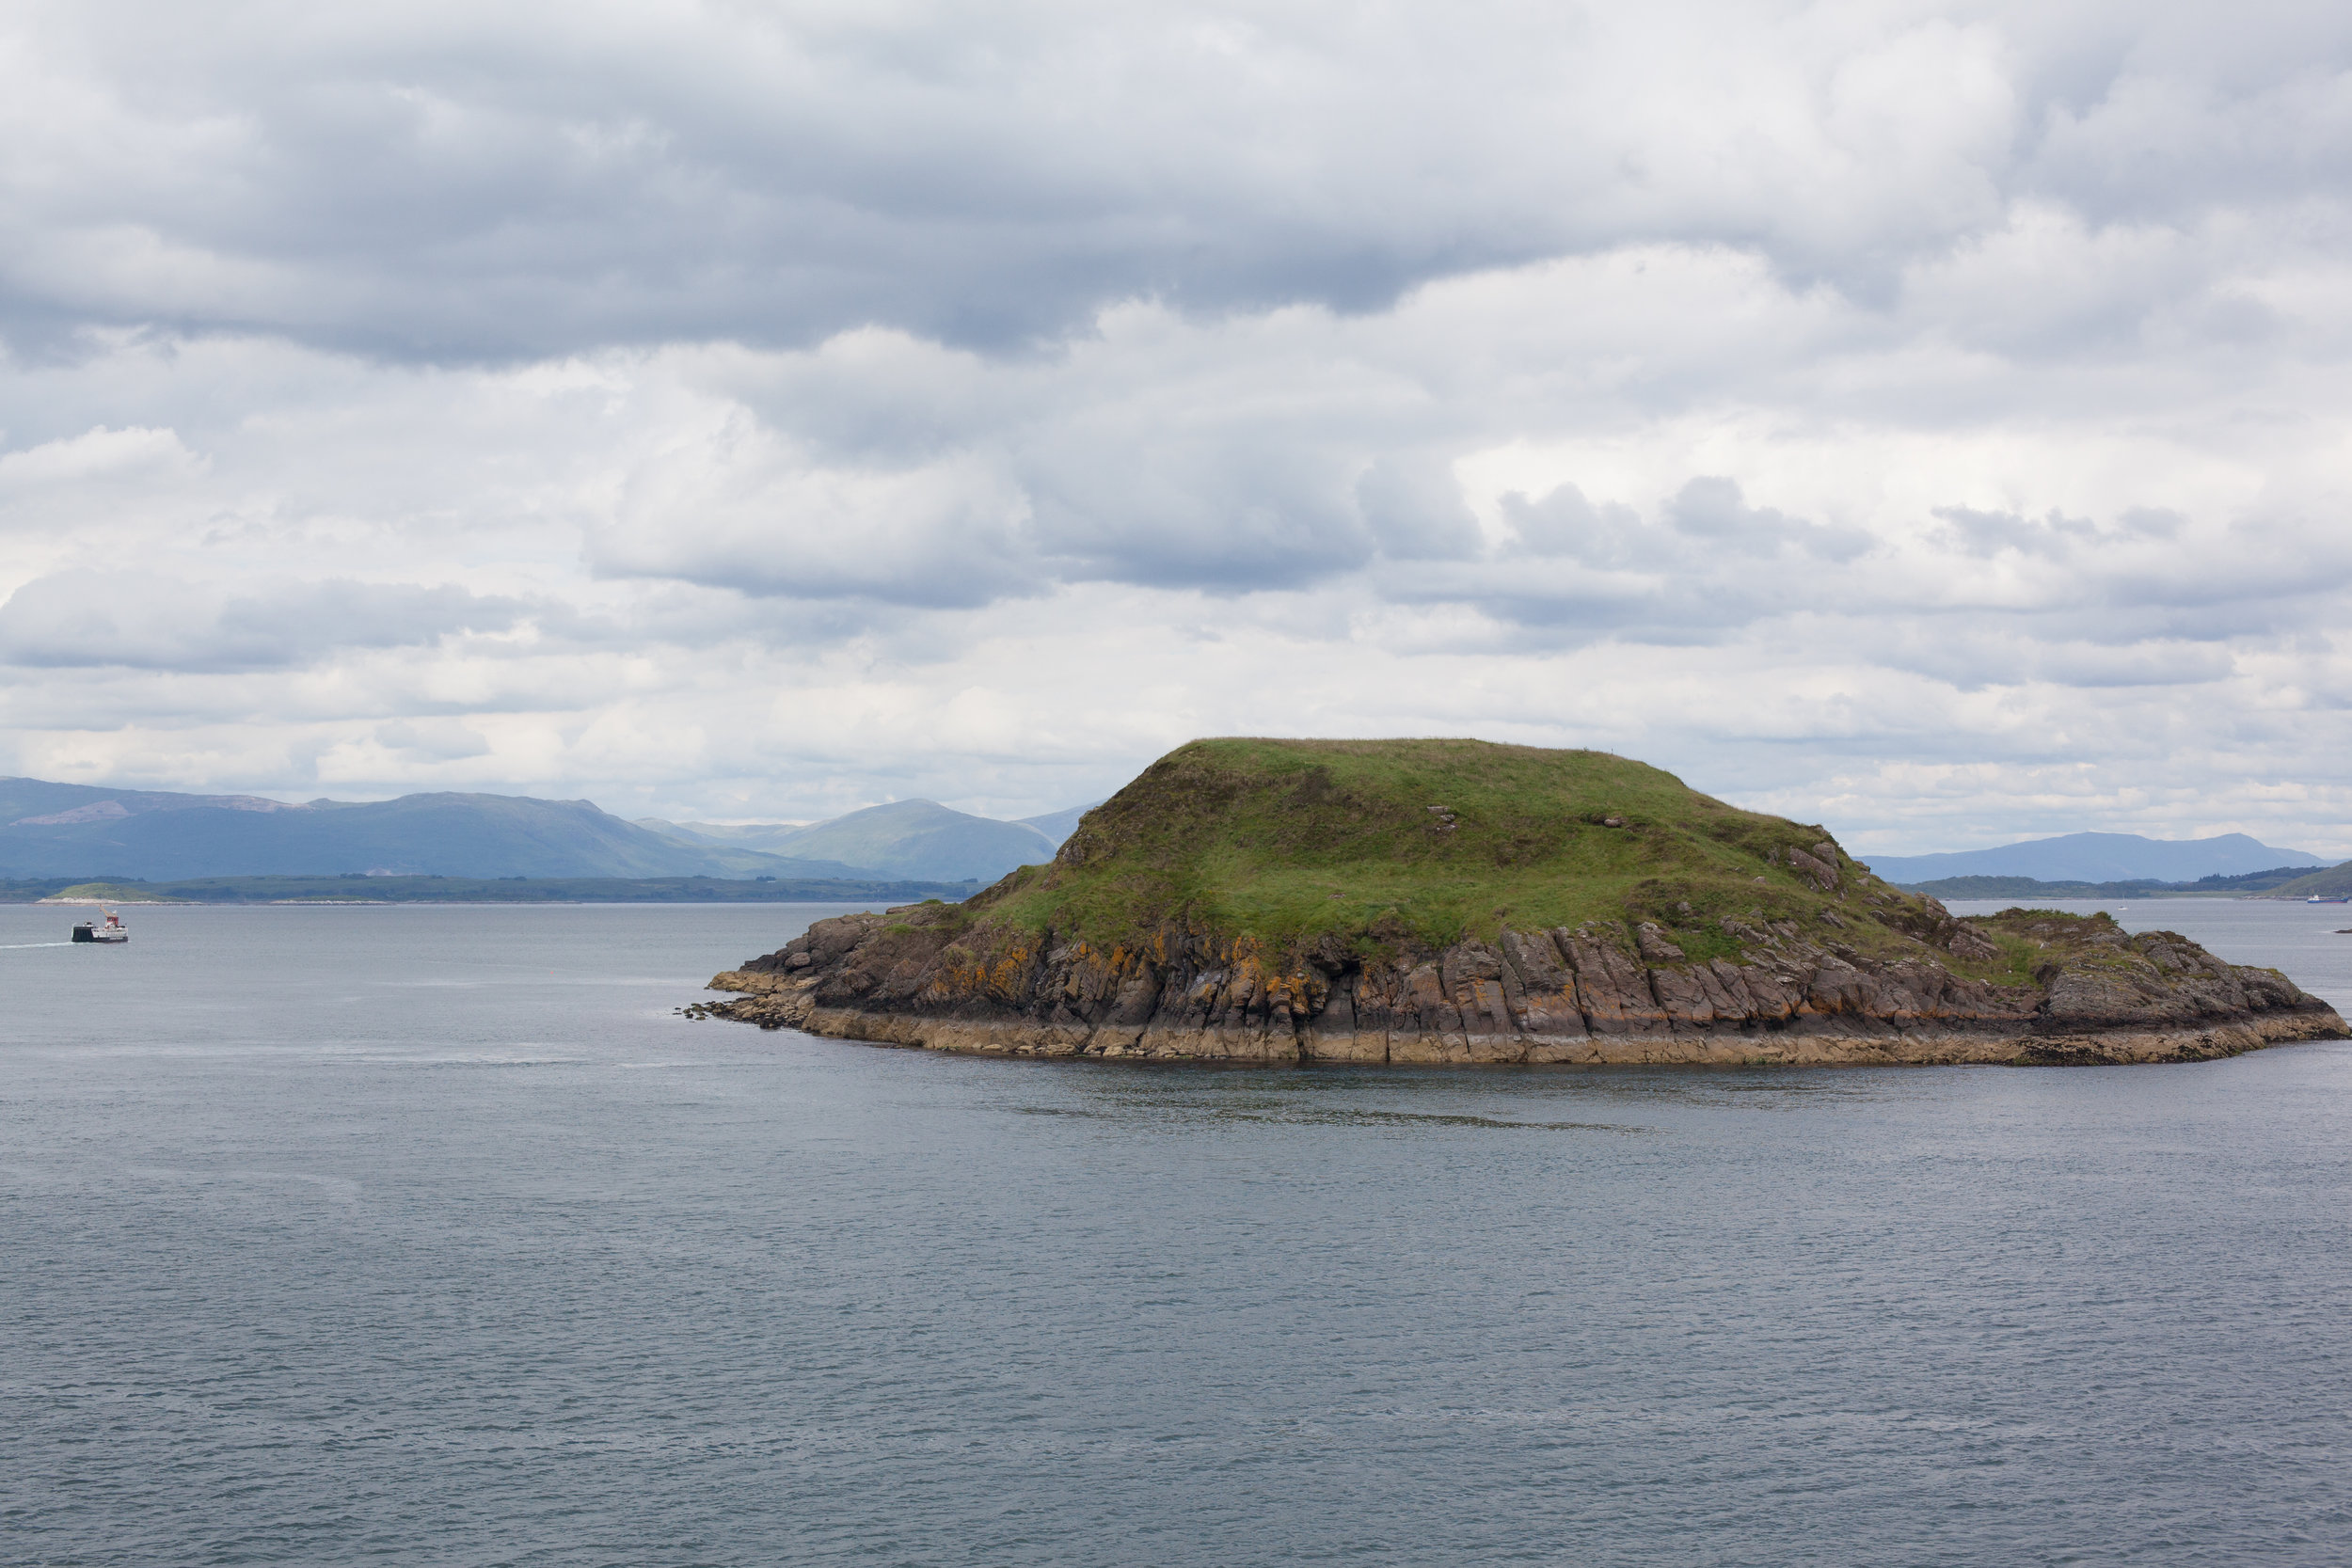 An small island off of the coastline of Great Britain.